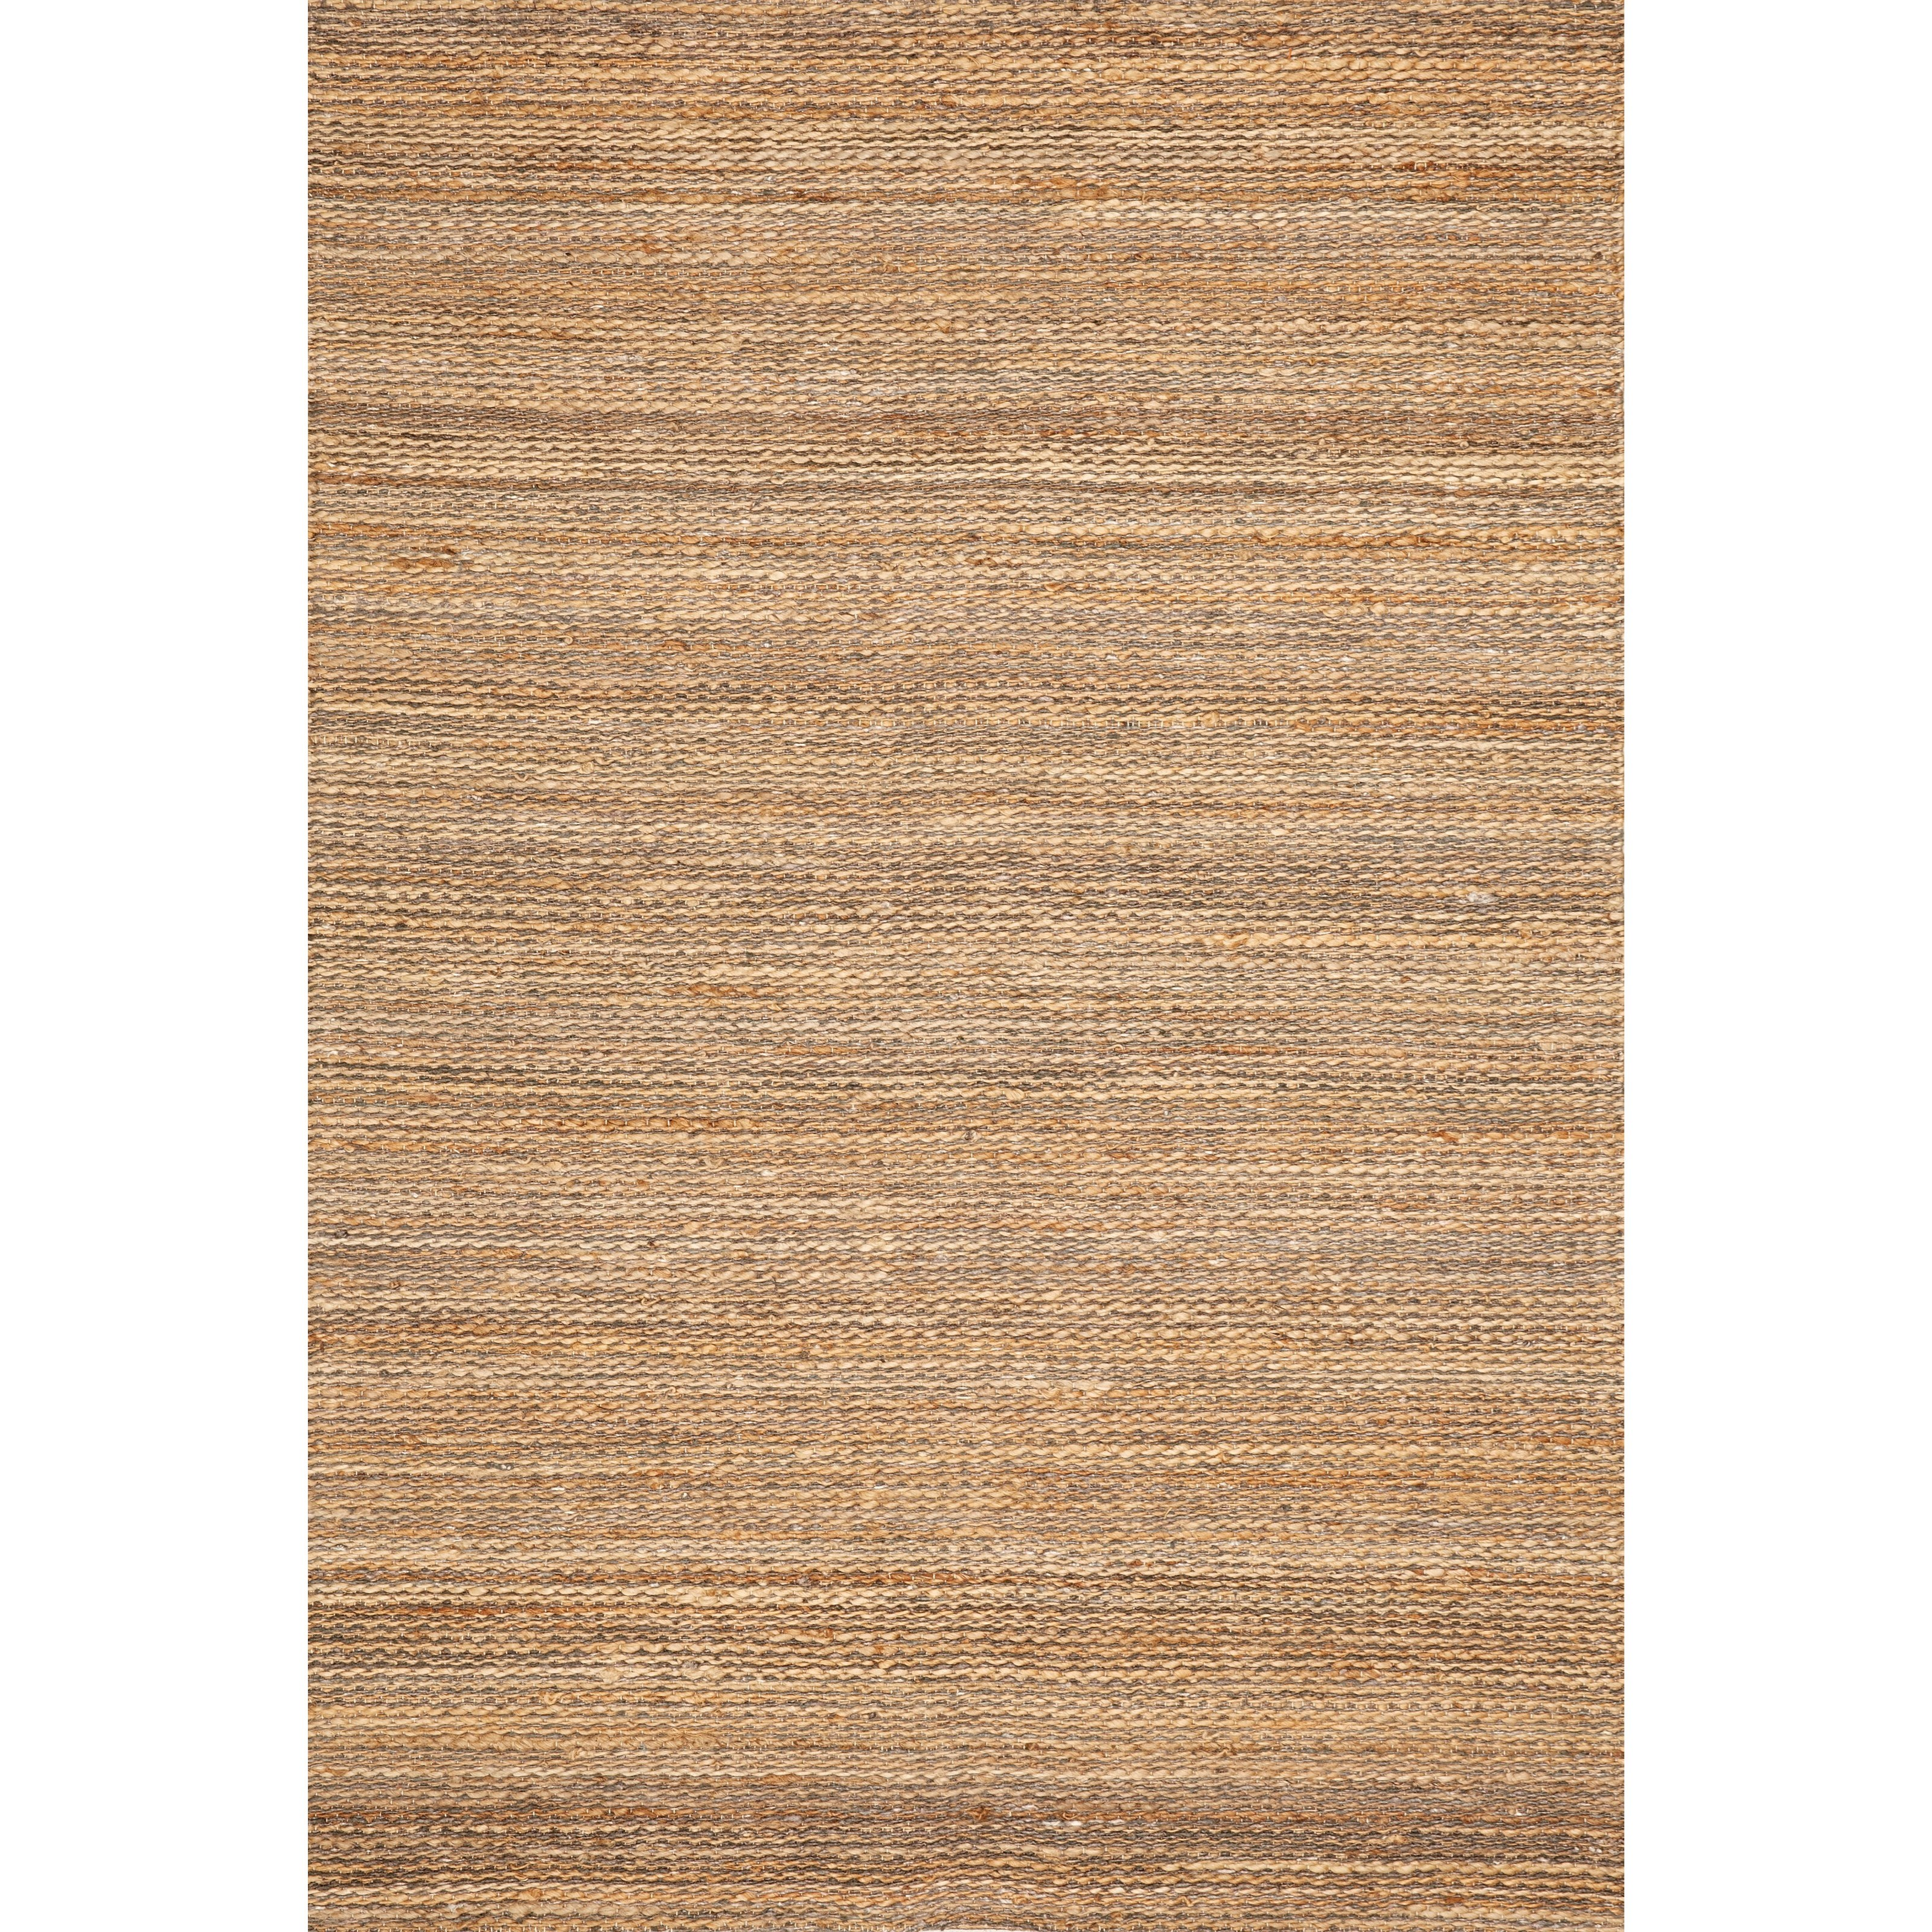 Dalyn Banyan Pewter 9'X13' Rug - Item Number: BN100PE9X13